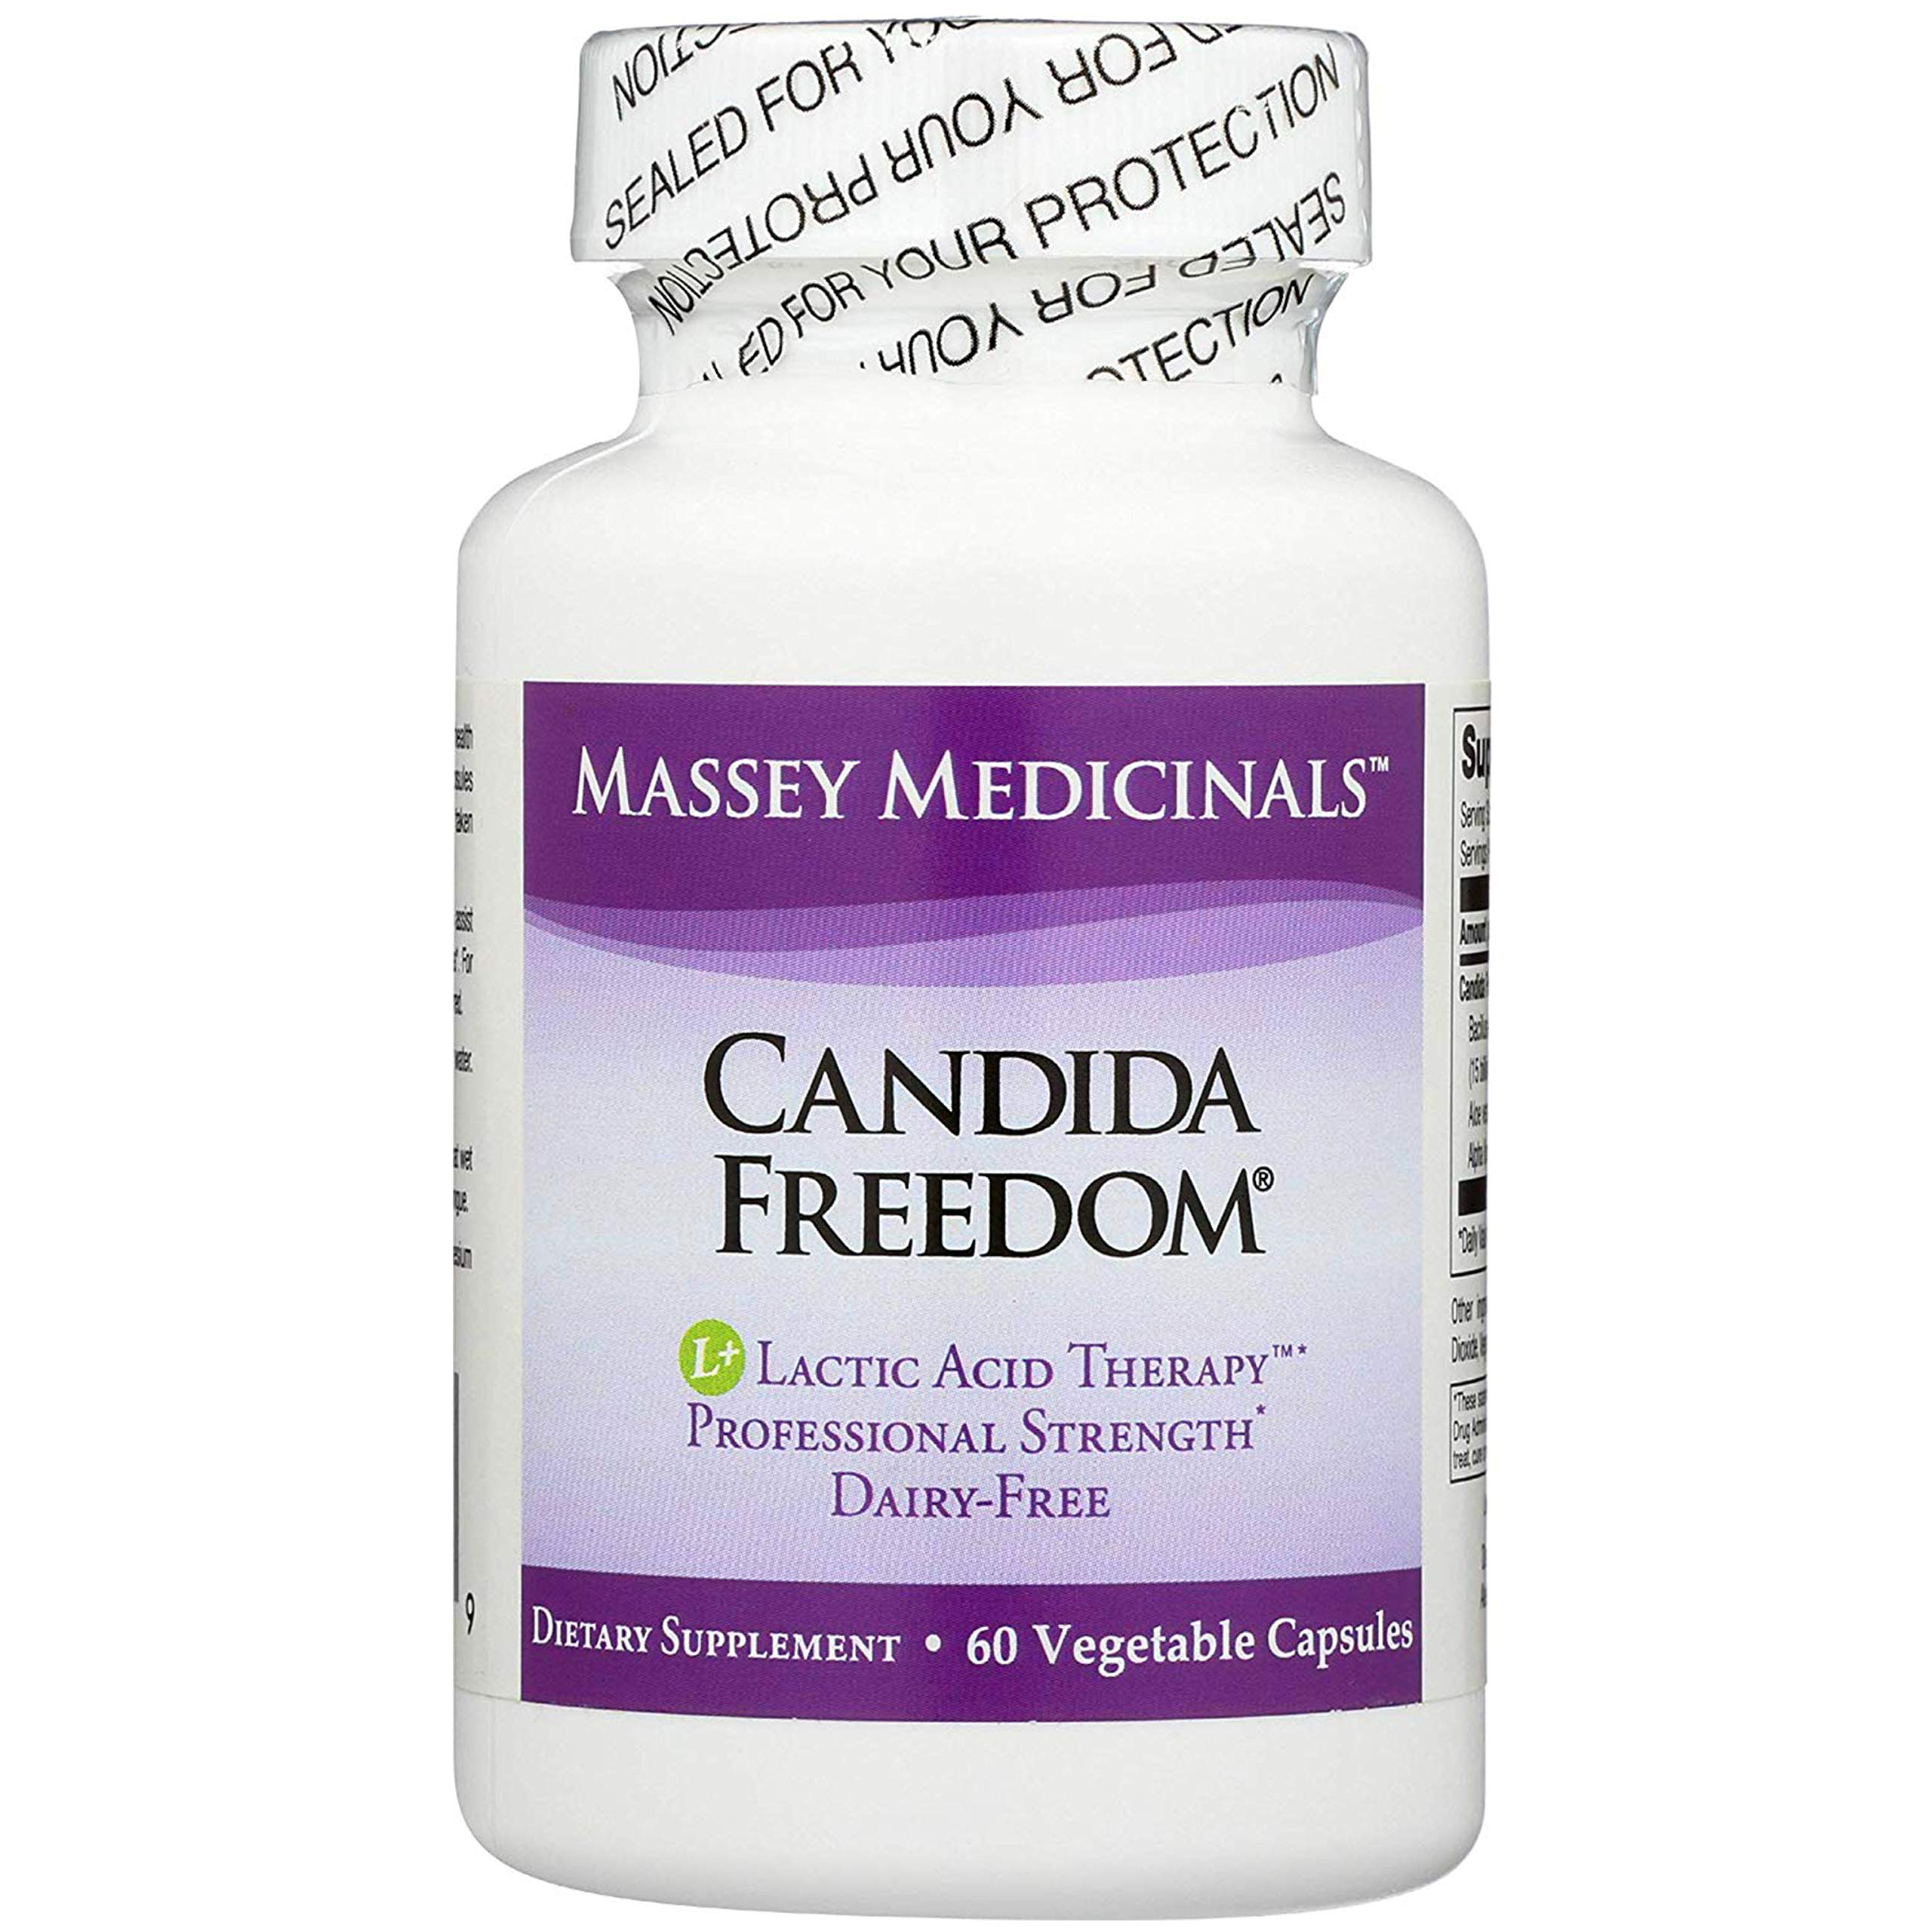 Massey Medicinals - Candida Freedom Yeast Overgrowth Digestive Cleanse - Natural Probiotic to Support Yeast Control & Gut Flora -60 Count by Candida Freedom